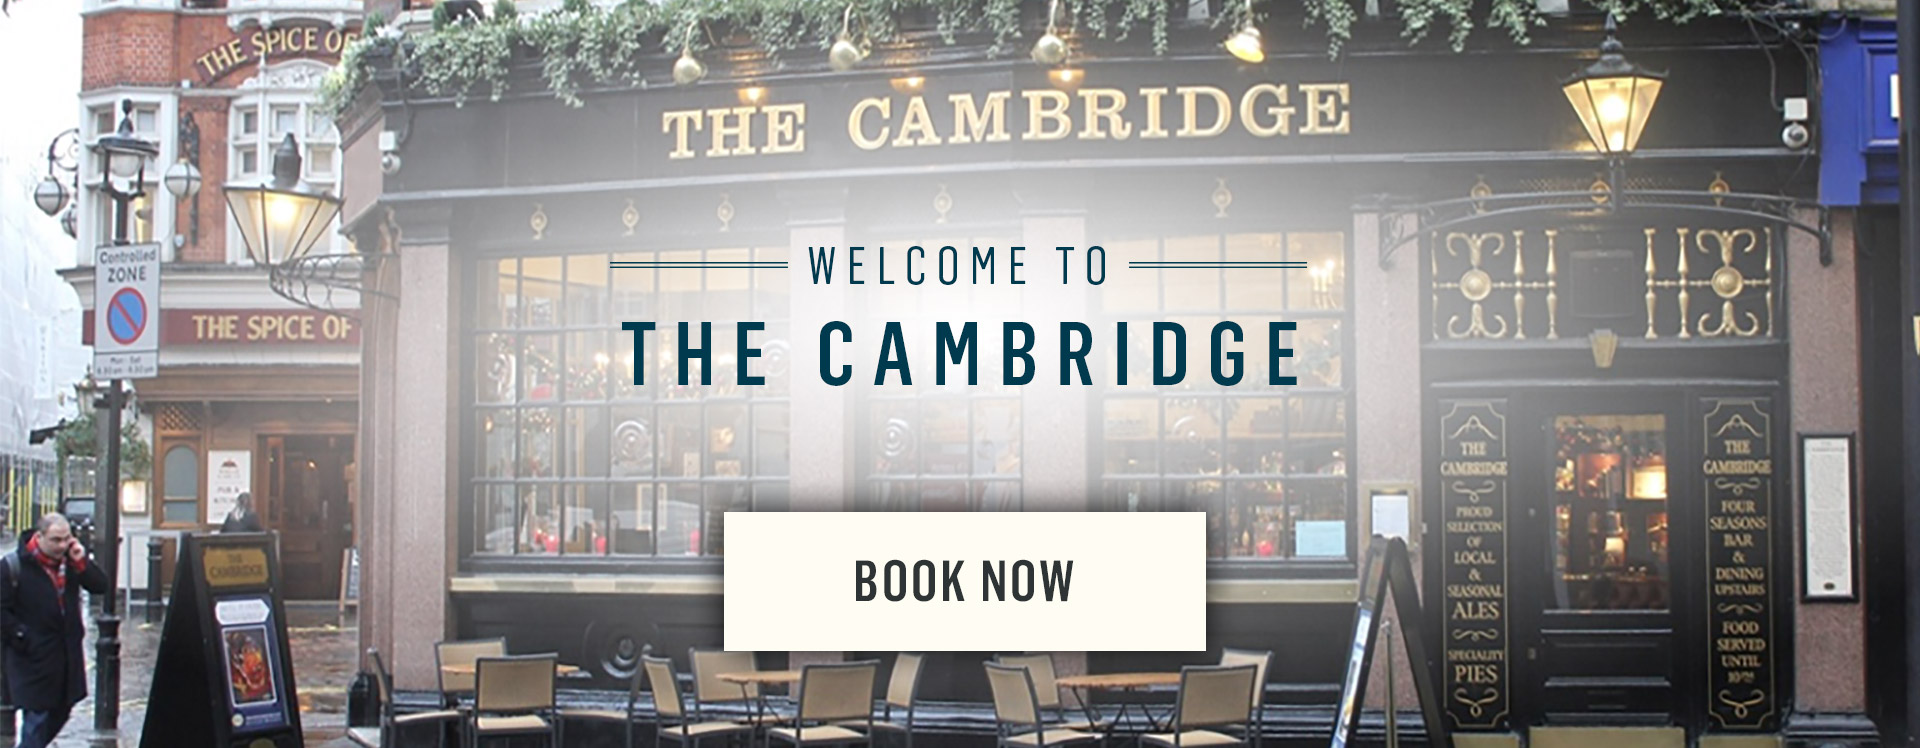 Welcome to The Cambridge - Book Now